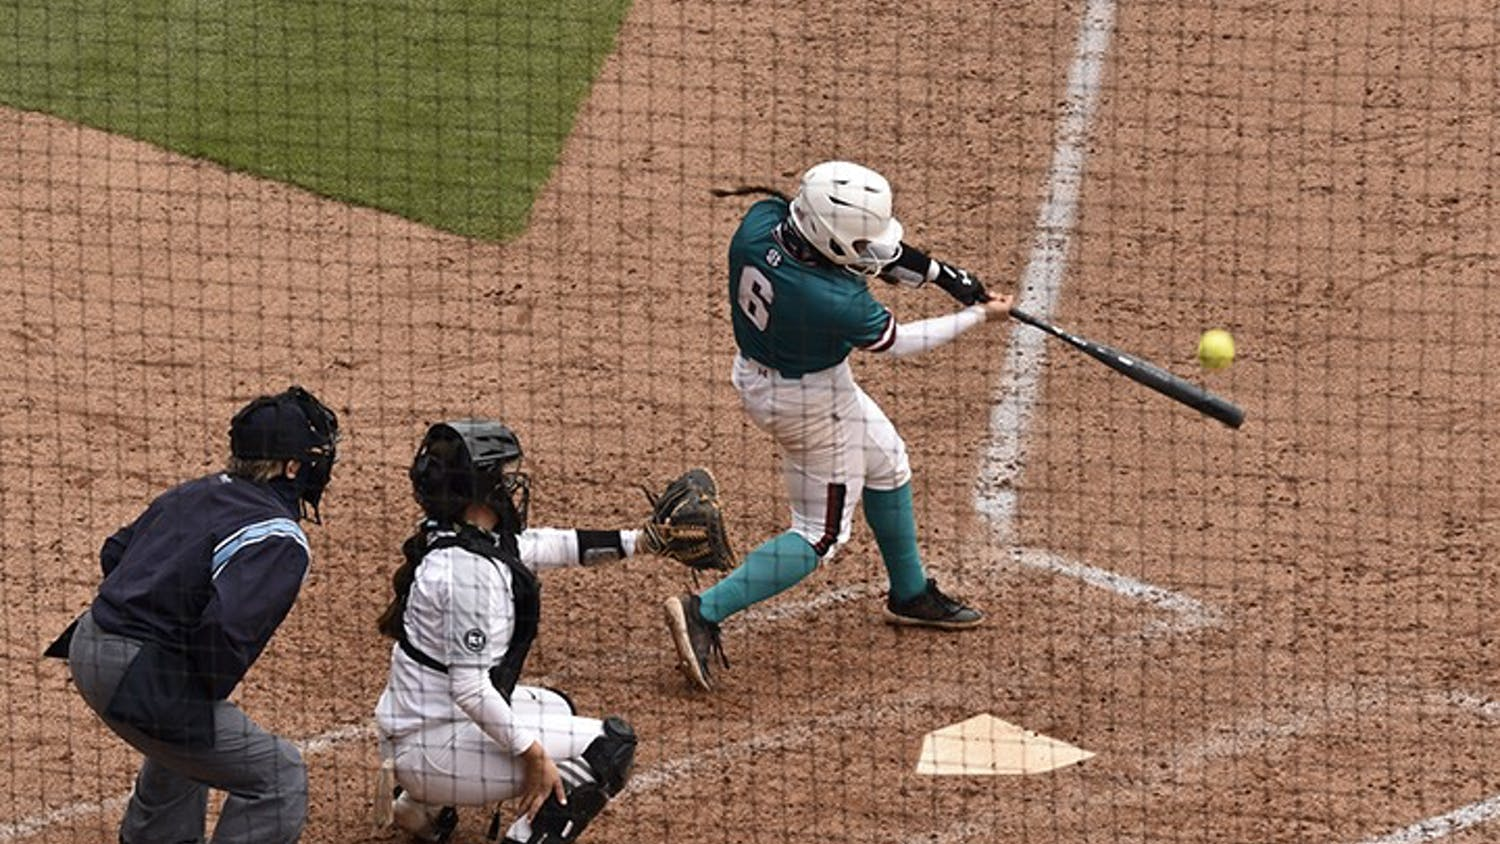 """Junior catcher Jordan Fabian connects on a pitch in Sunday's game against the University of Central Florida. The Gamecocks wore teal for """"All for Alex,"""" which is an organization that aids in the fight against ovarian cancer."""